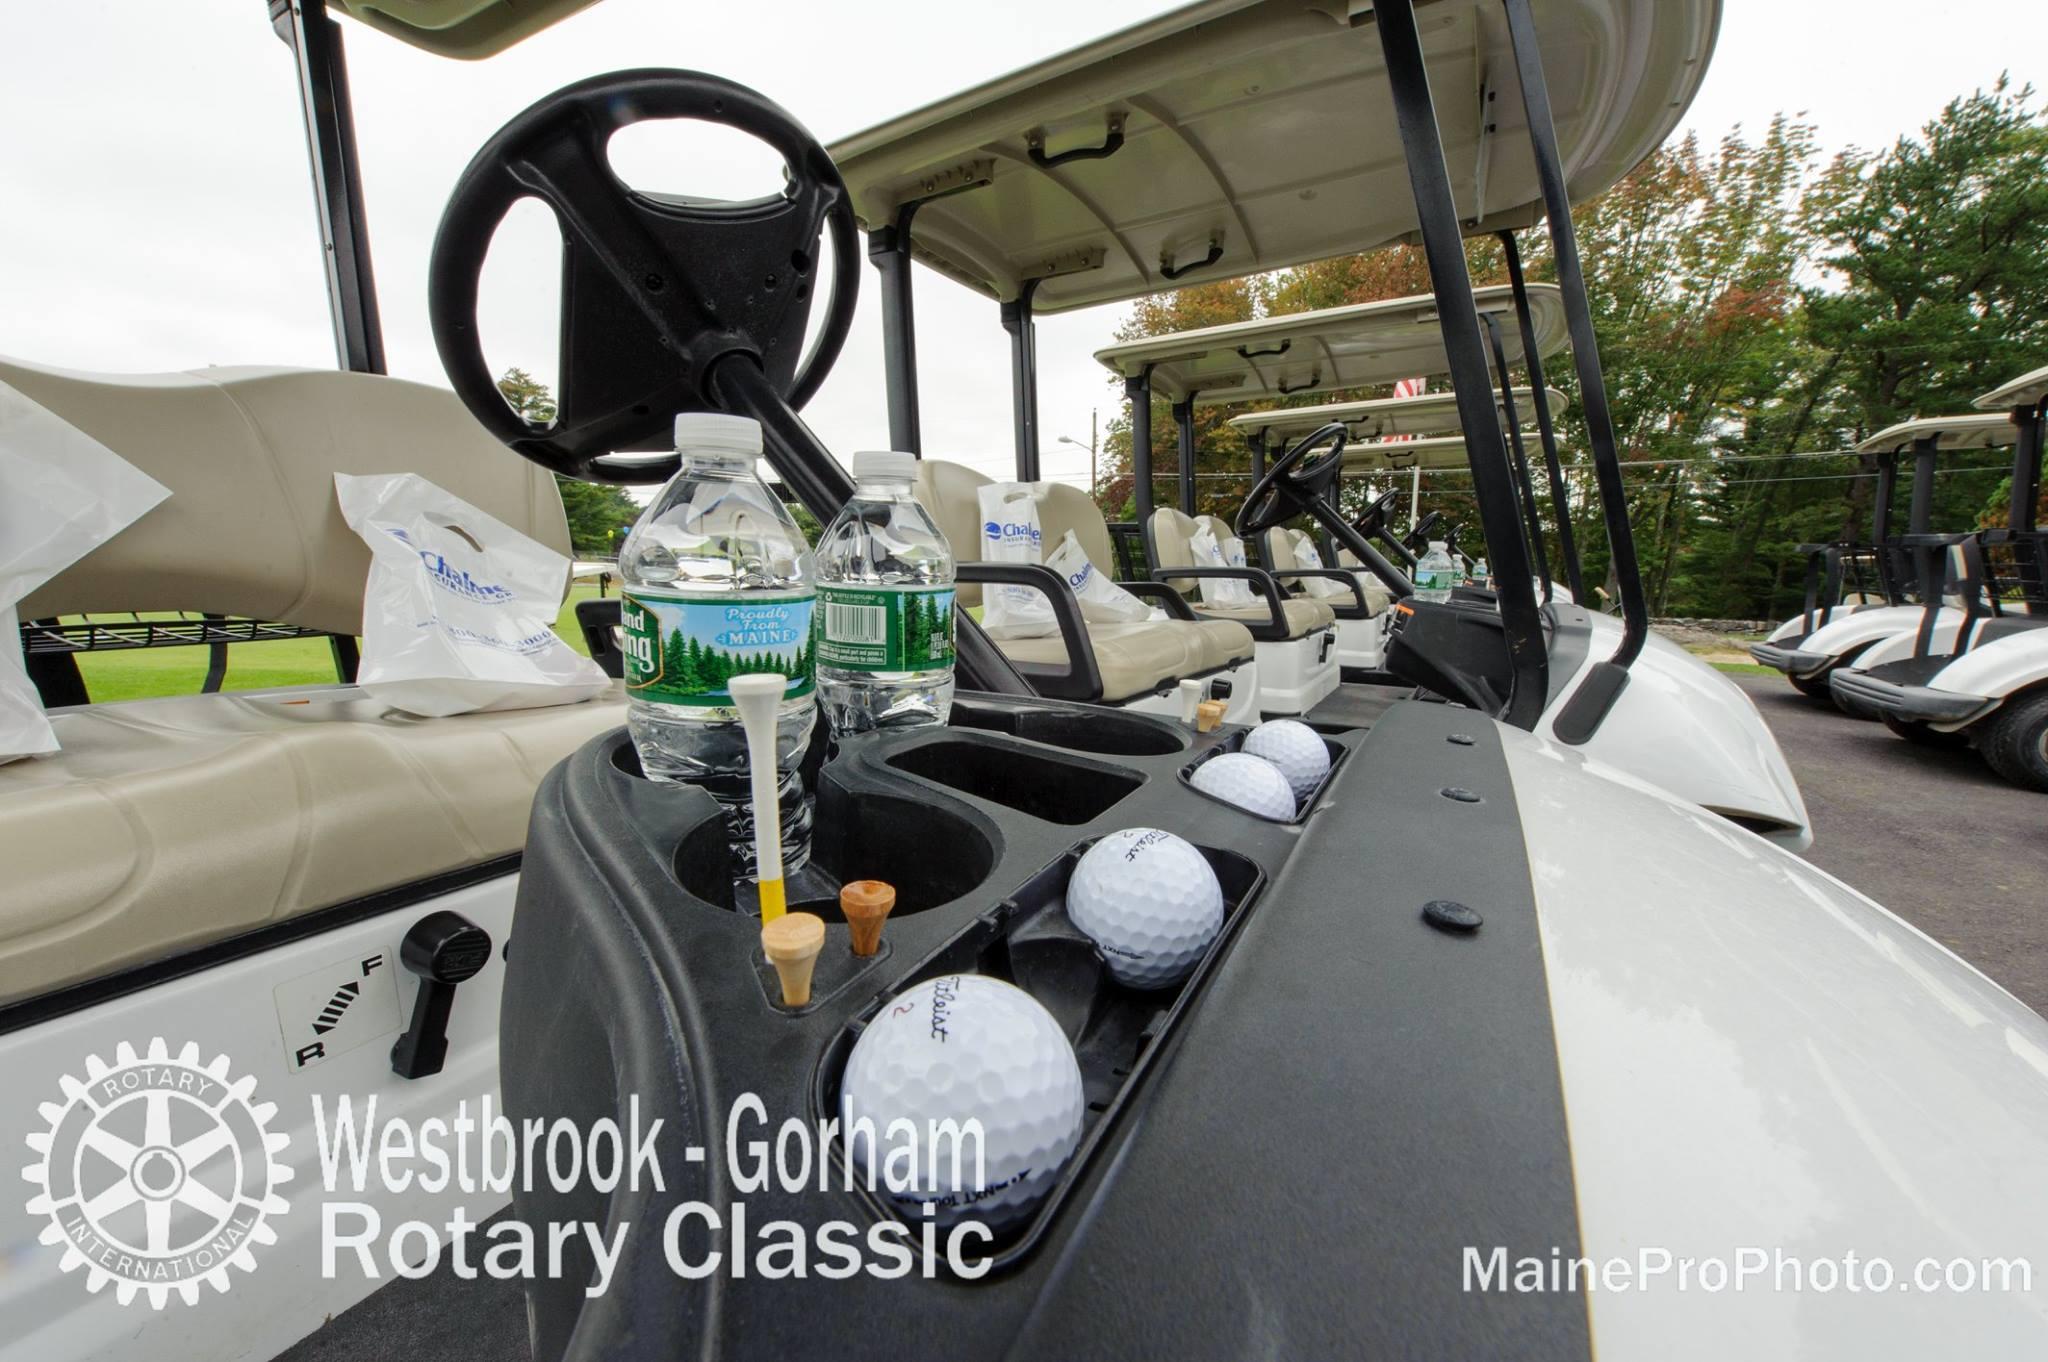 26th Annual Rotary Classic Golf Tournament - Default Image of Tournament Sponsor